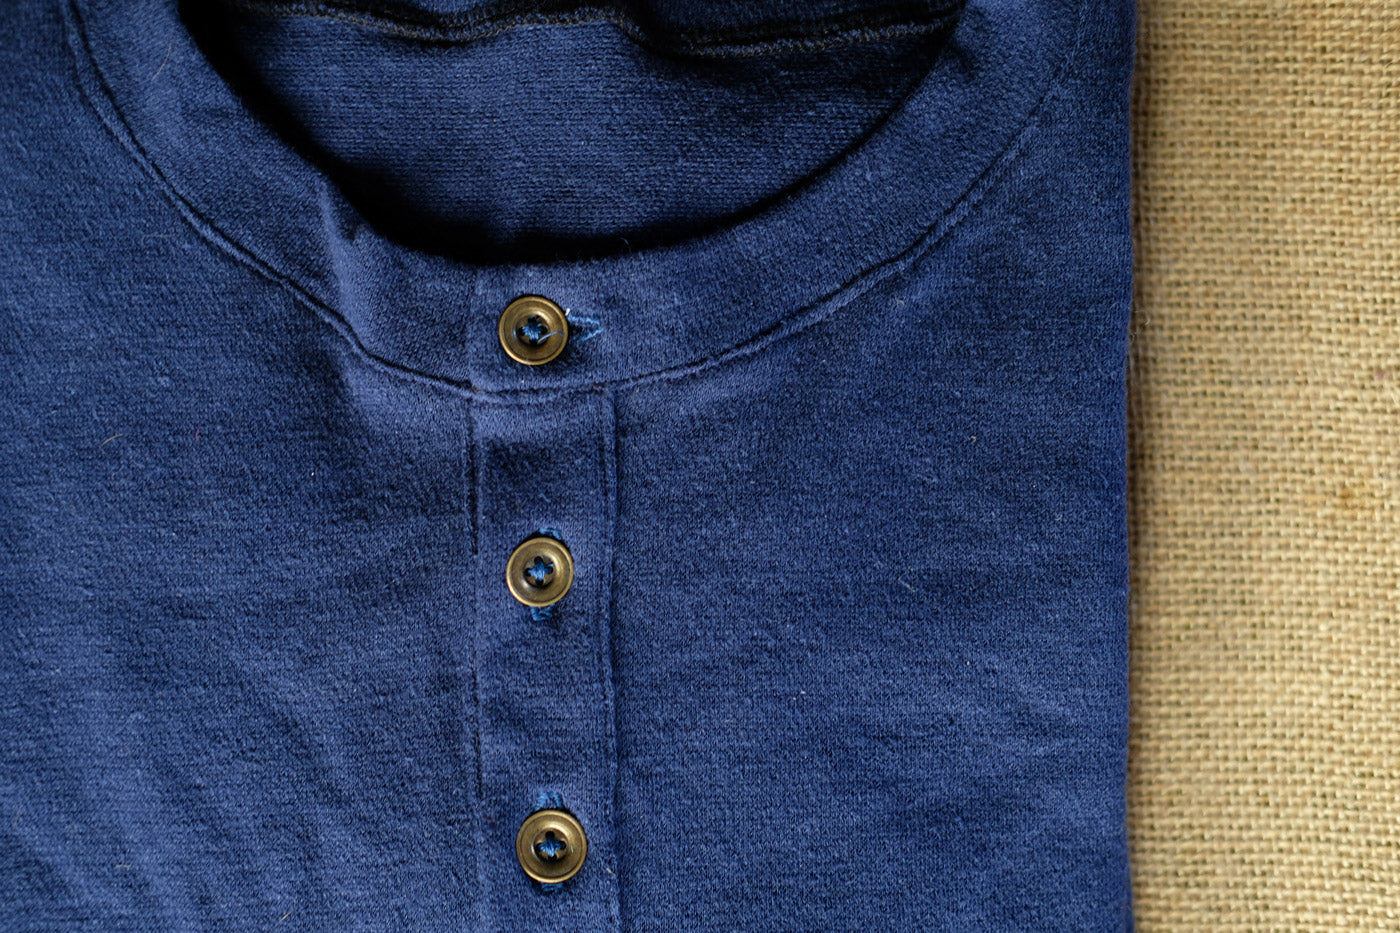 Detail of the Henley button placket